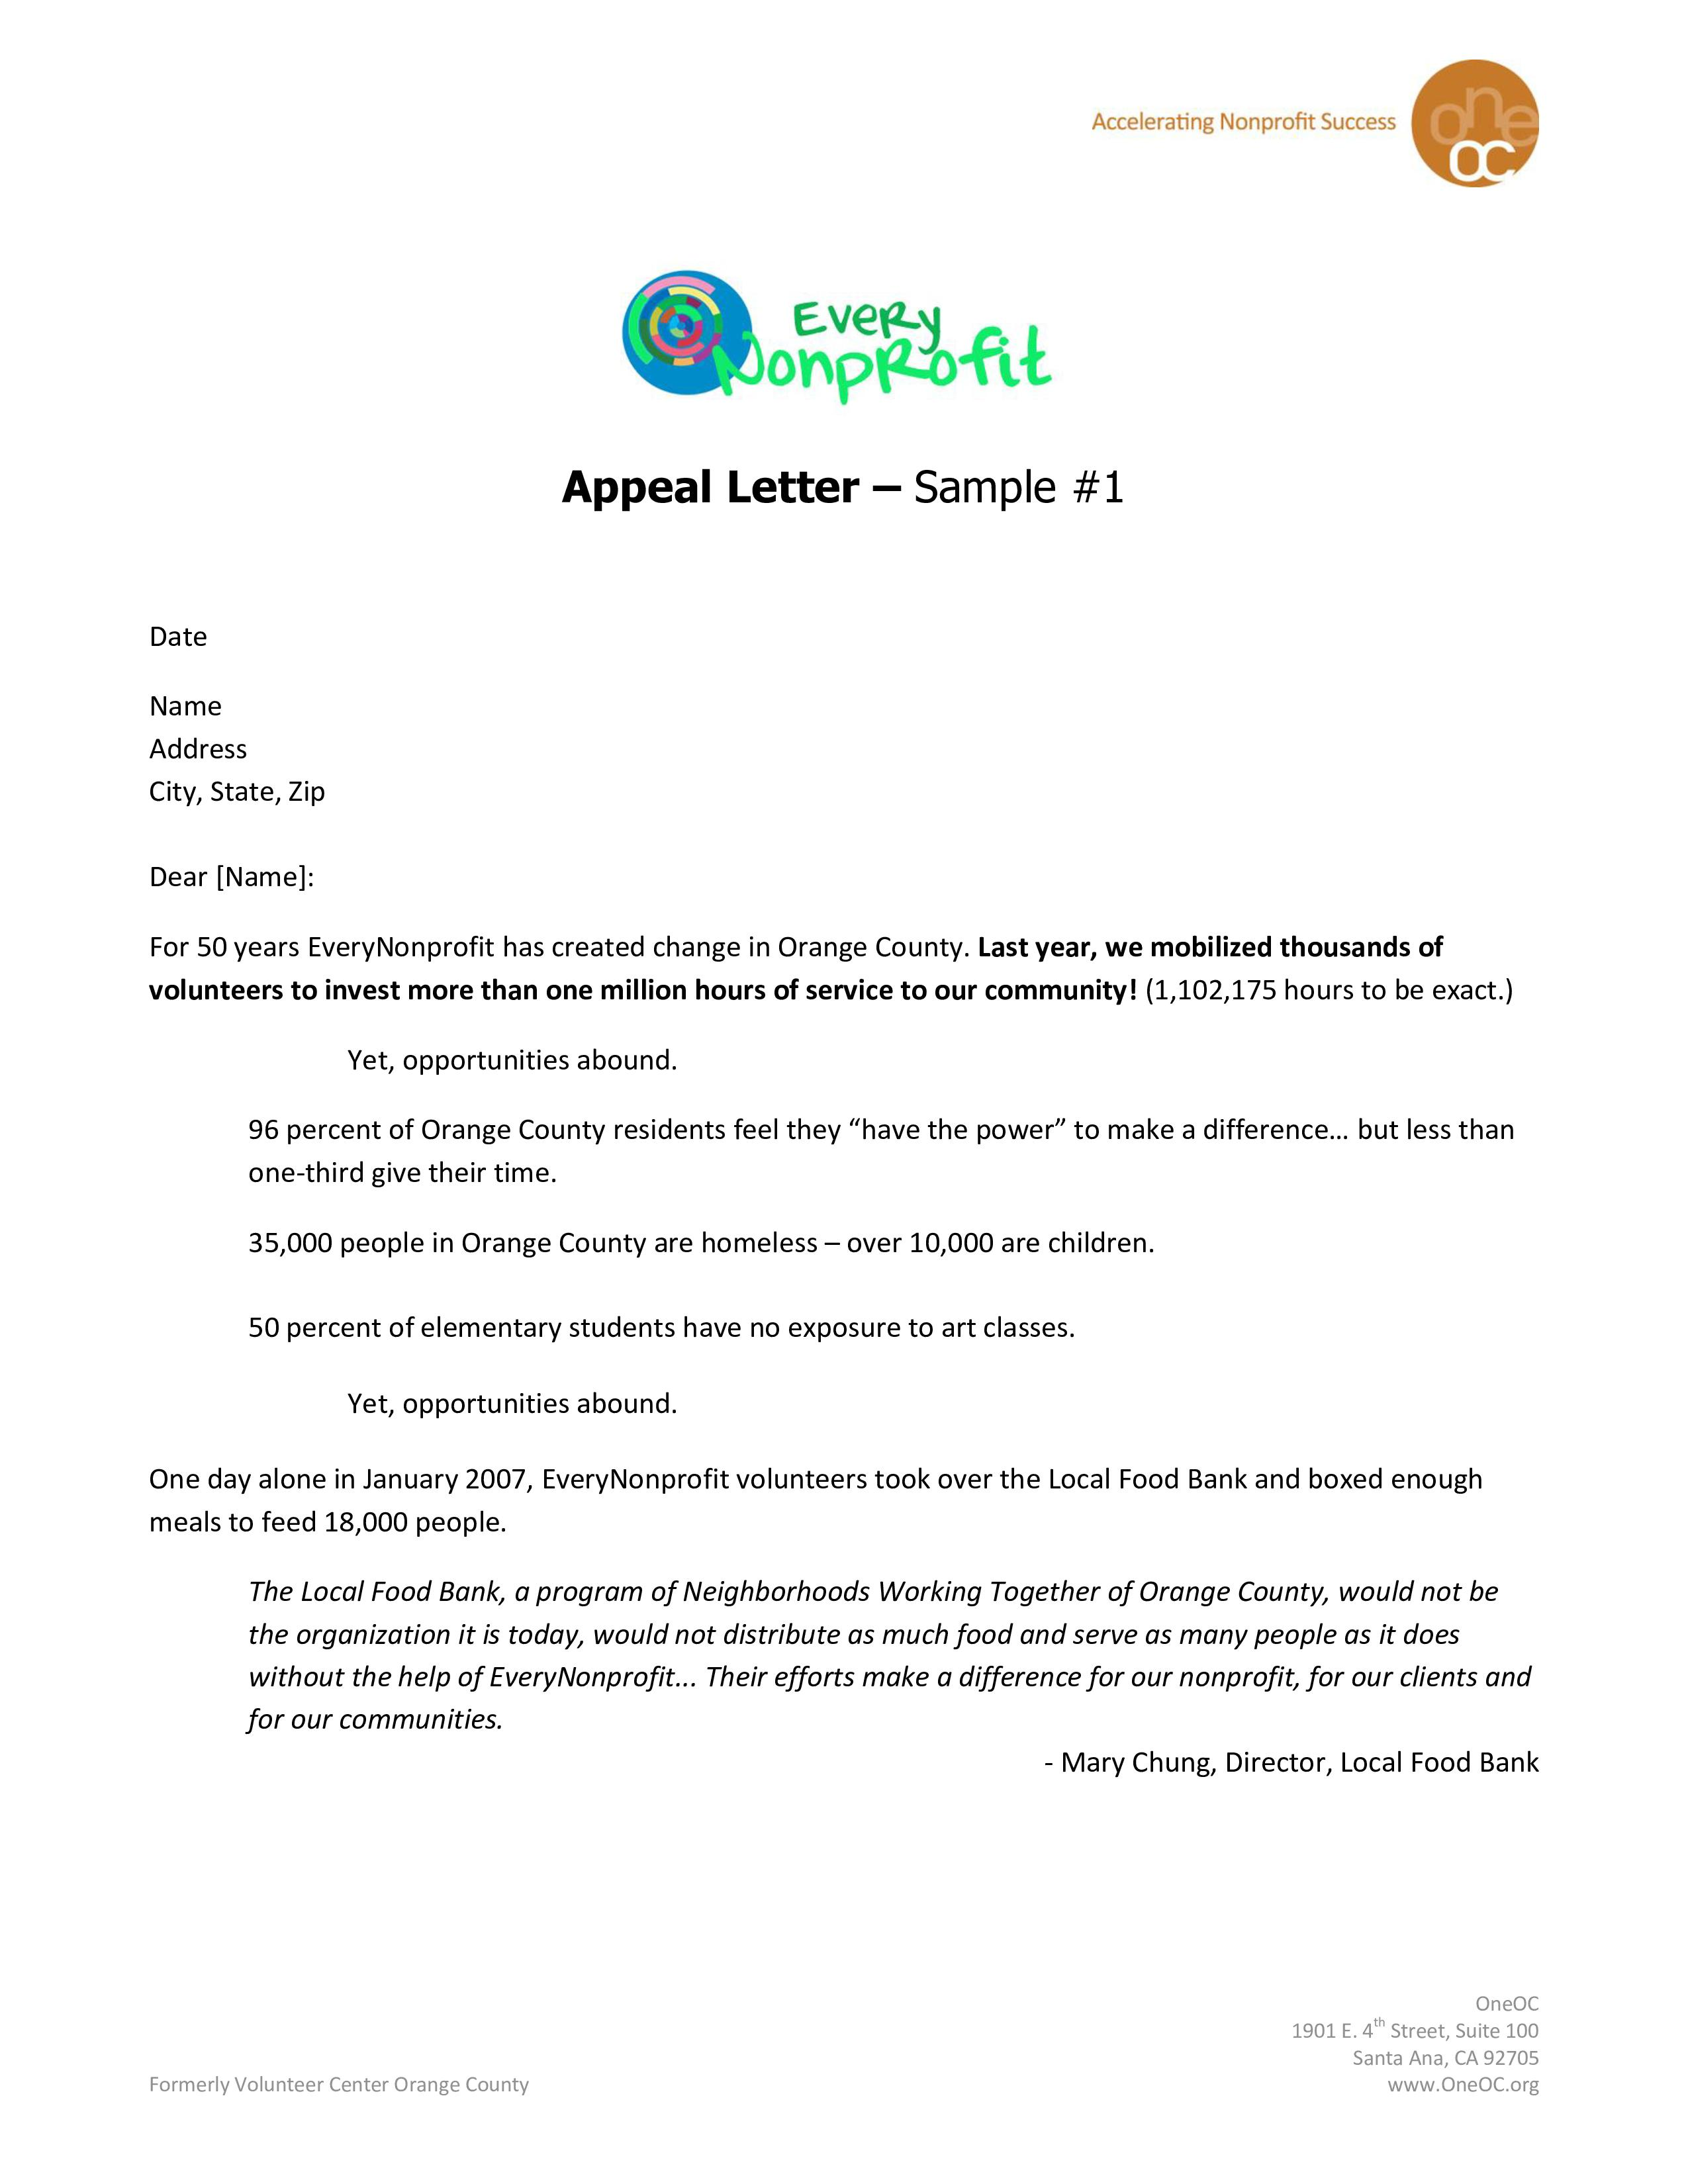 Fundraising Letter Template Pdf